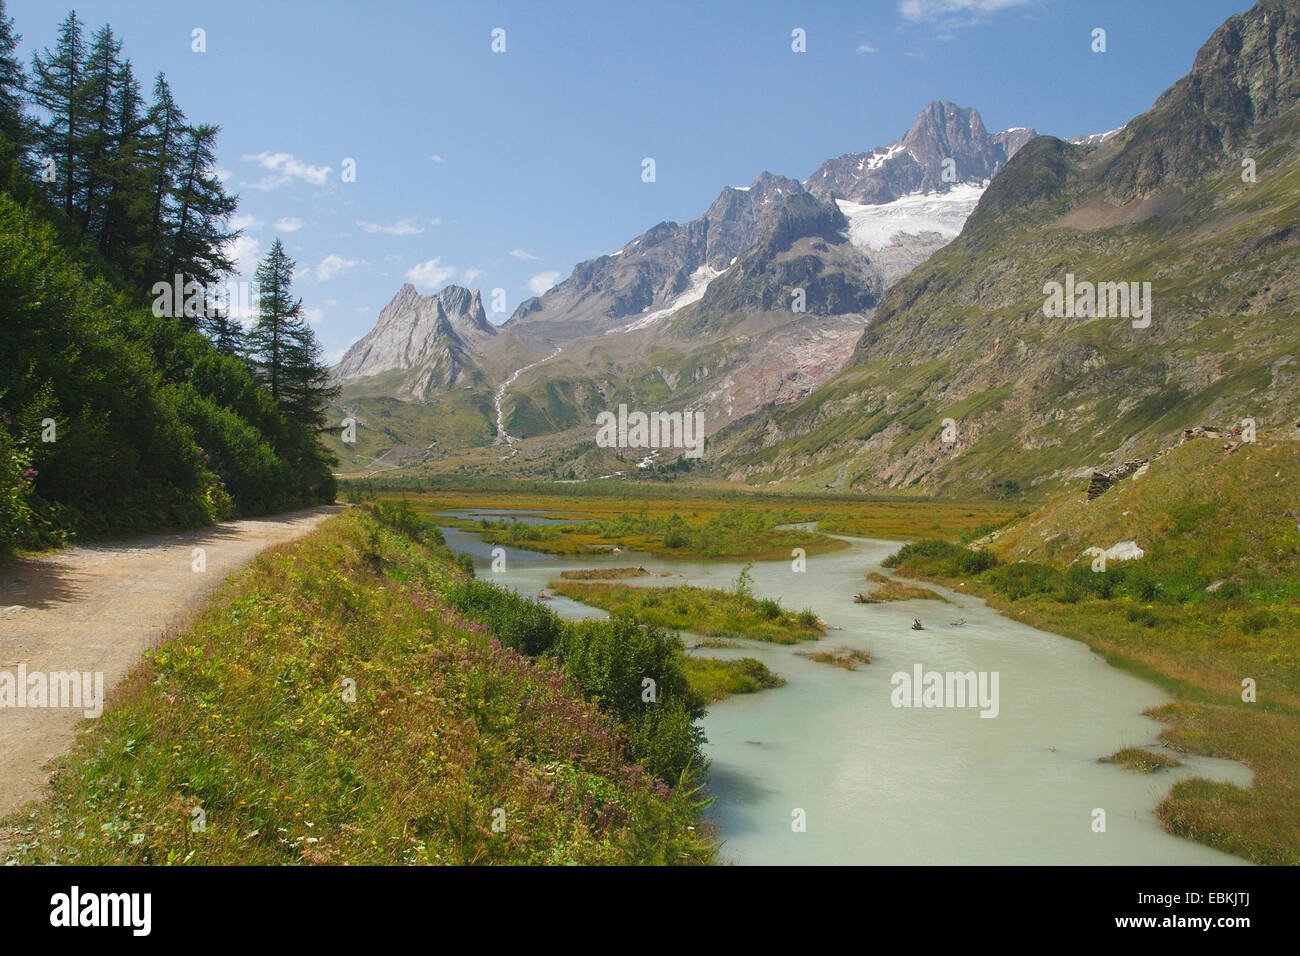 Lac de Combal in Val Veny with Aiguille des Glaciers, Italy - Stock Image